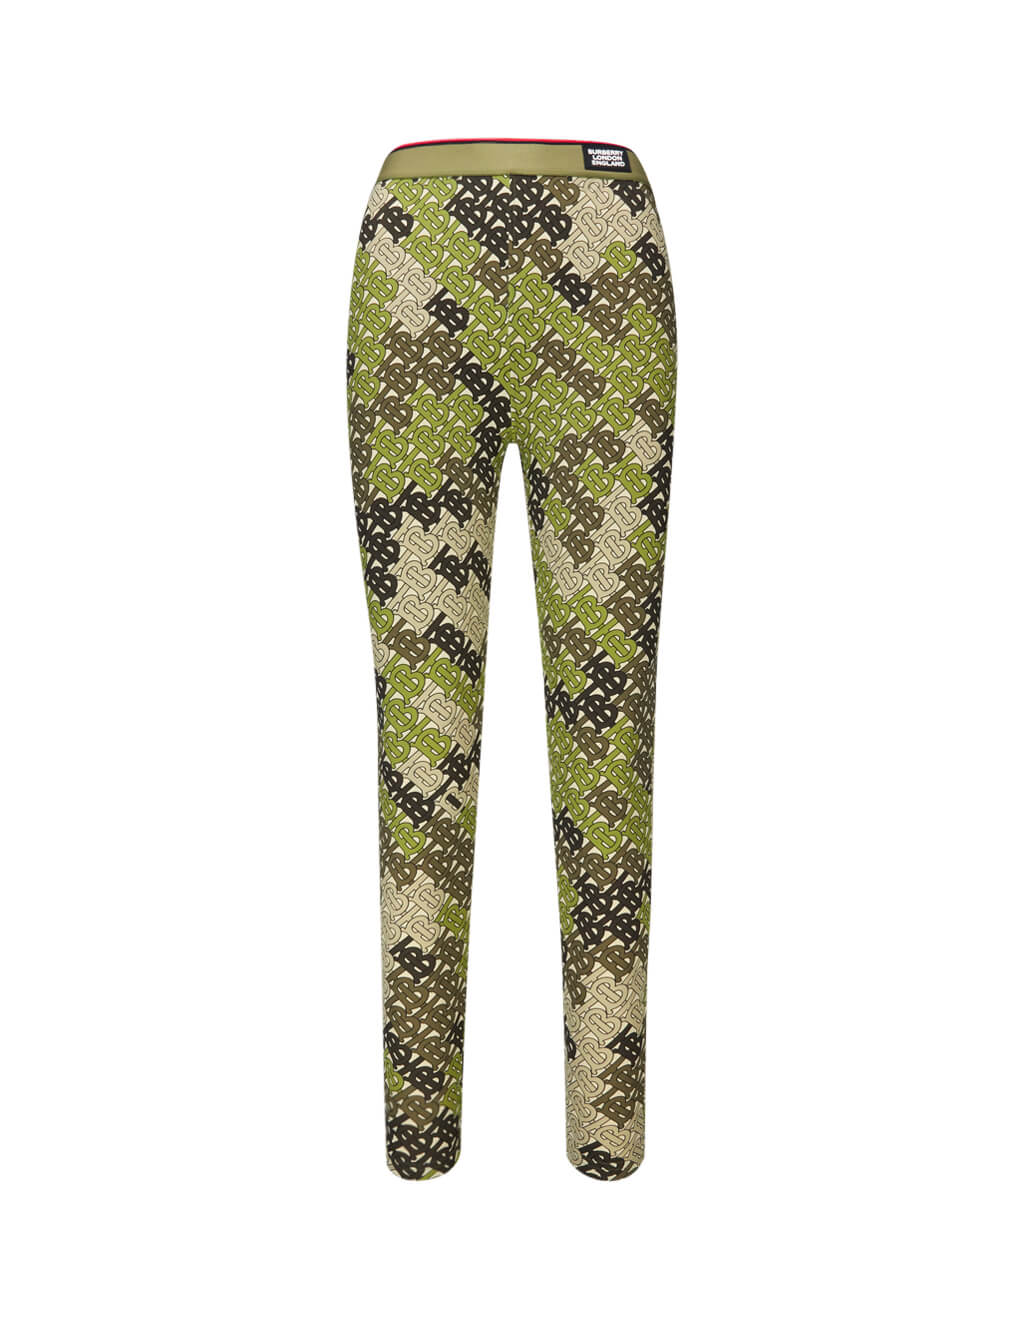 Burberry Women's Giulio Fashion Khaki Monogram Print Leggings 8018985A6850